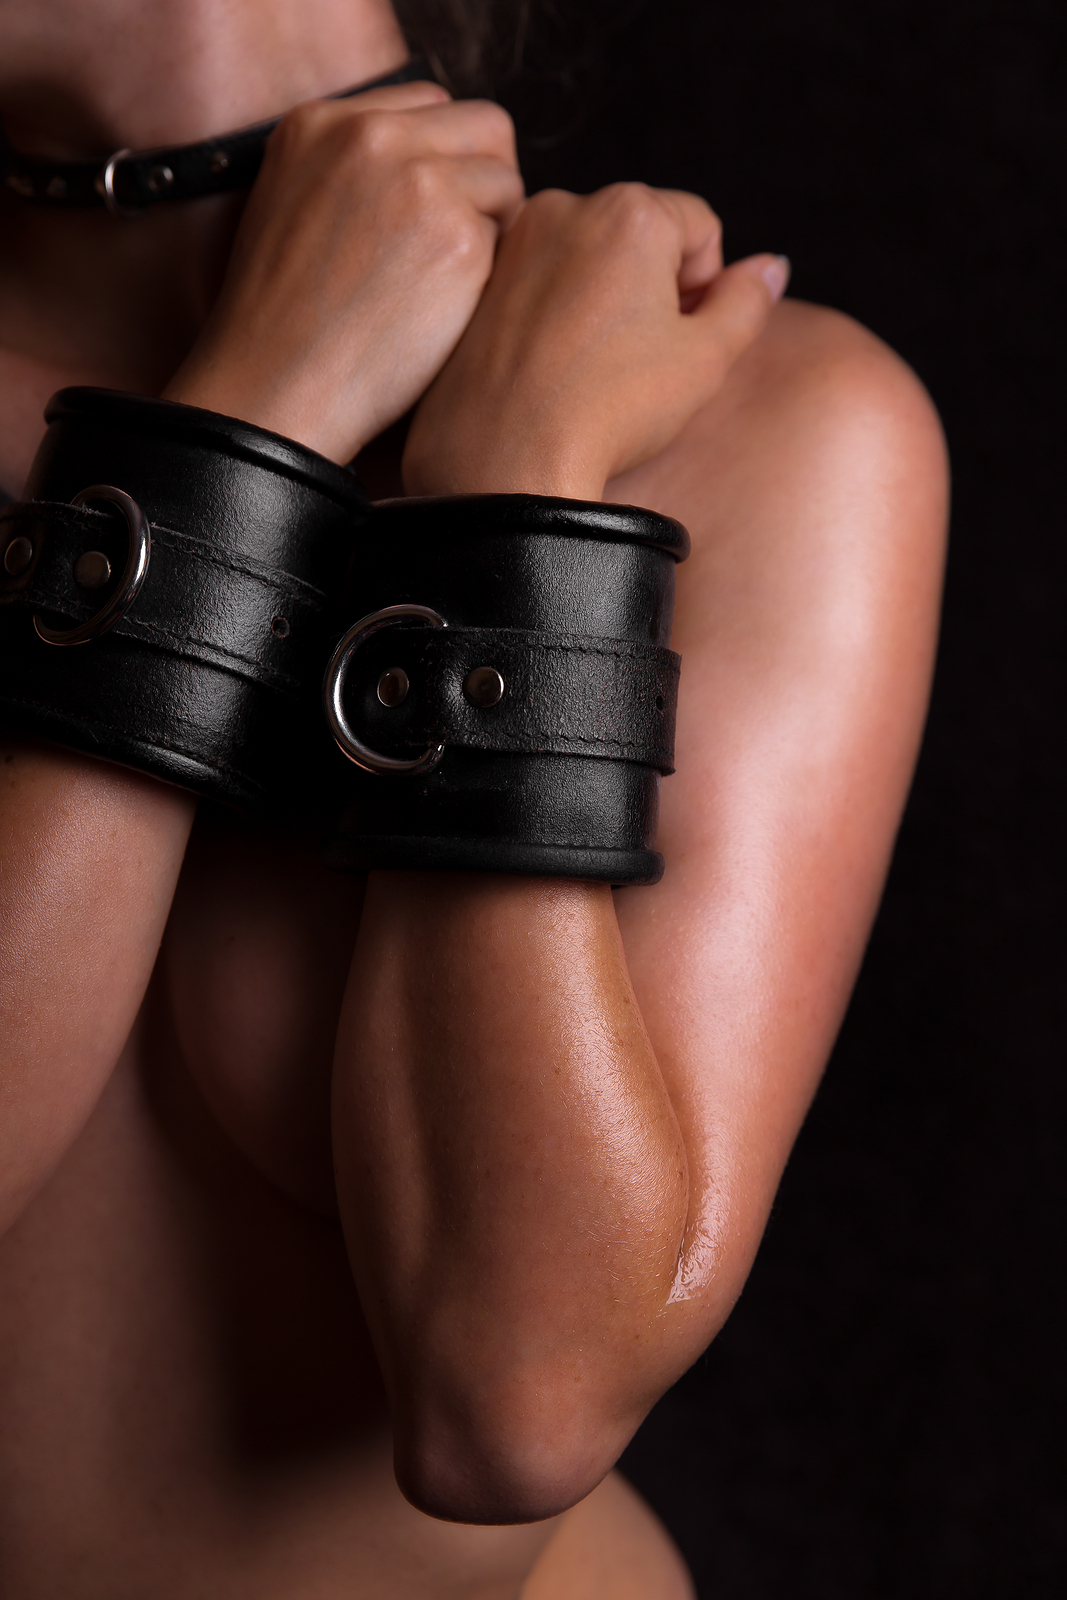 Naked Body With Leather Handcuffs